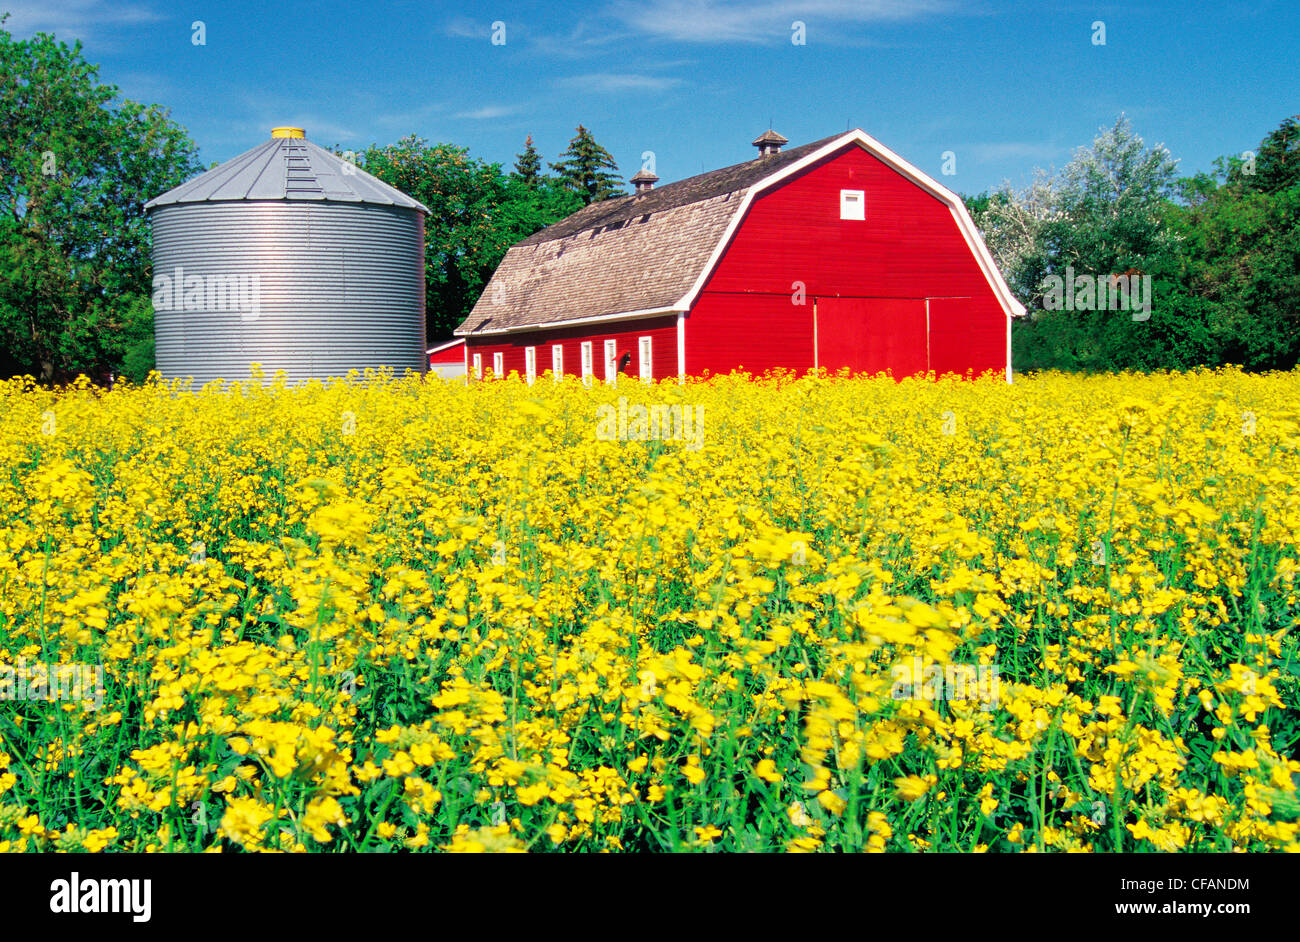 Red Barn Background blooming canola field with red barn and grain bin in the